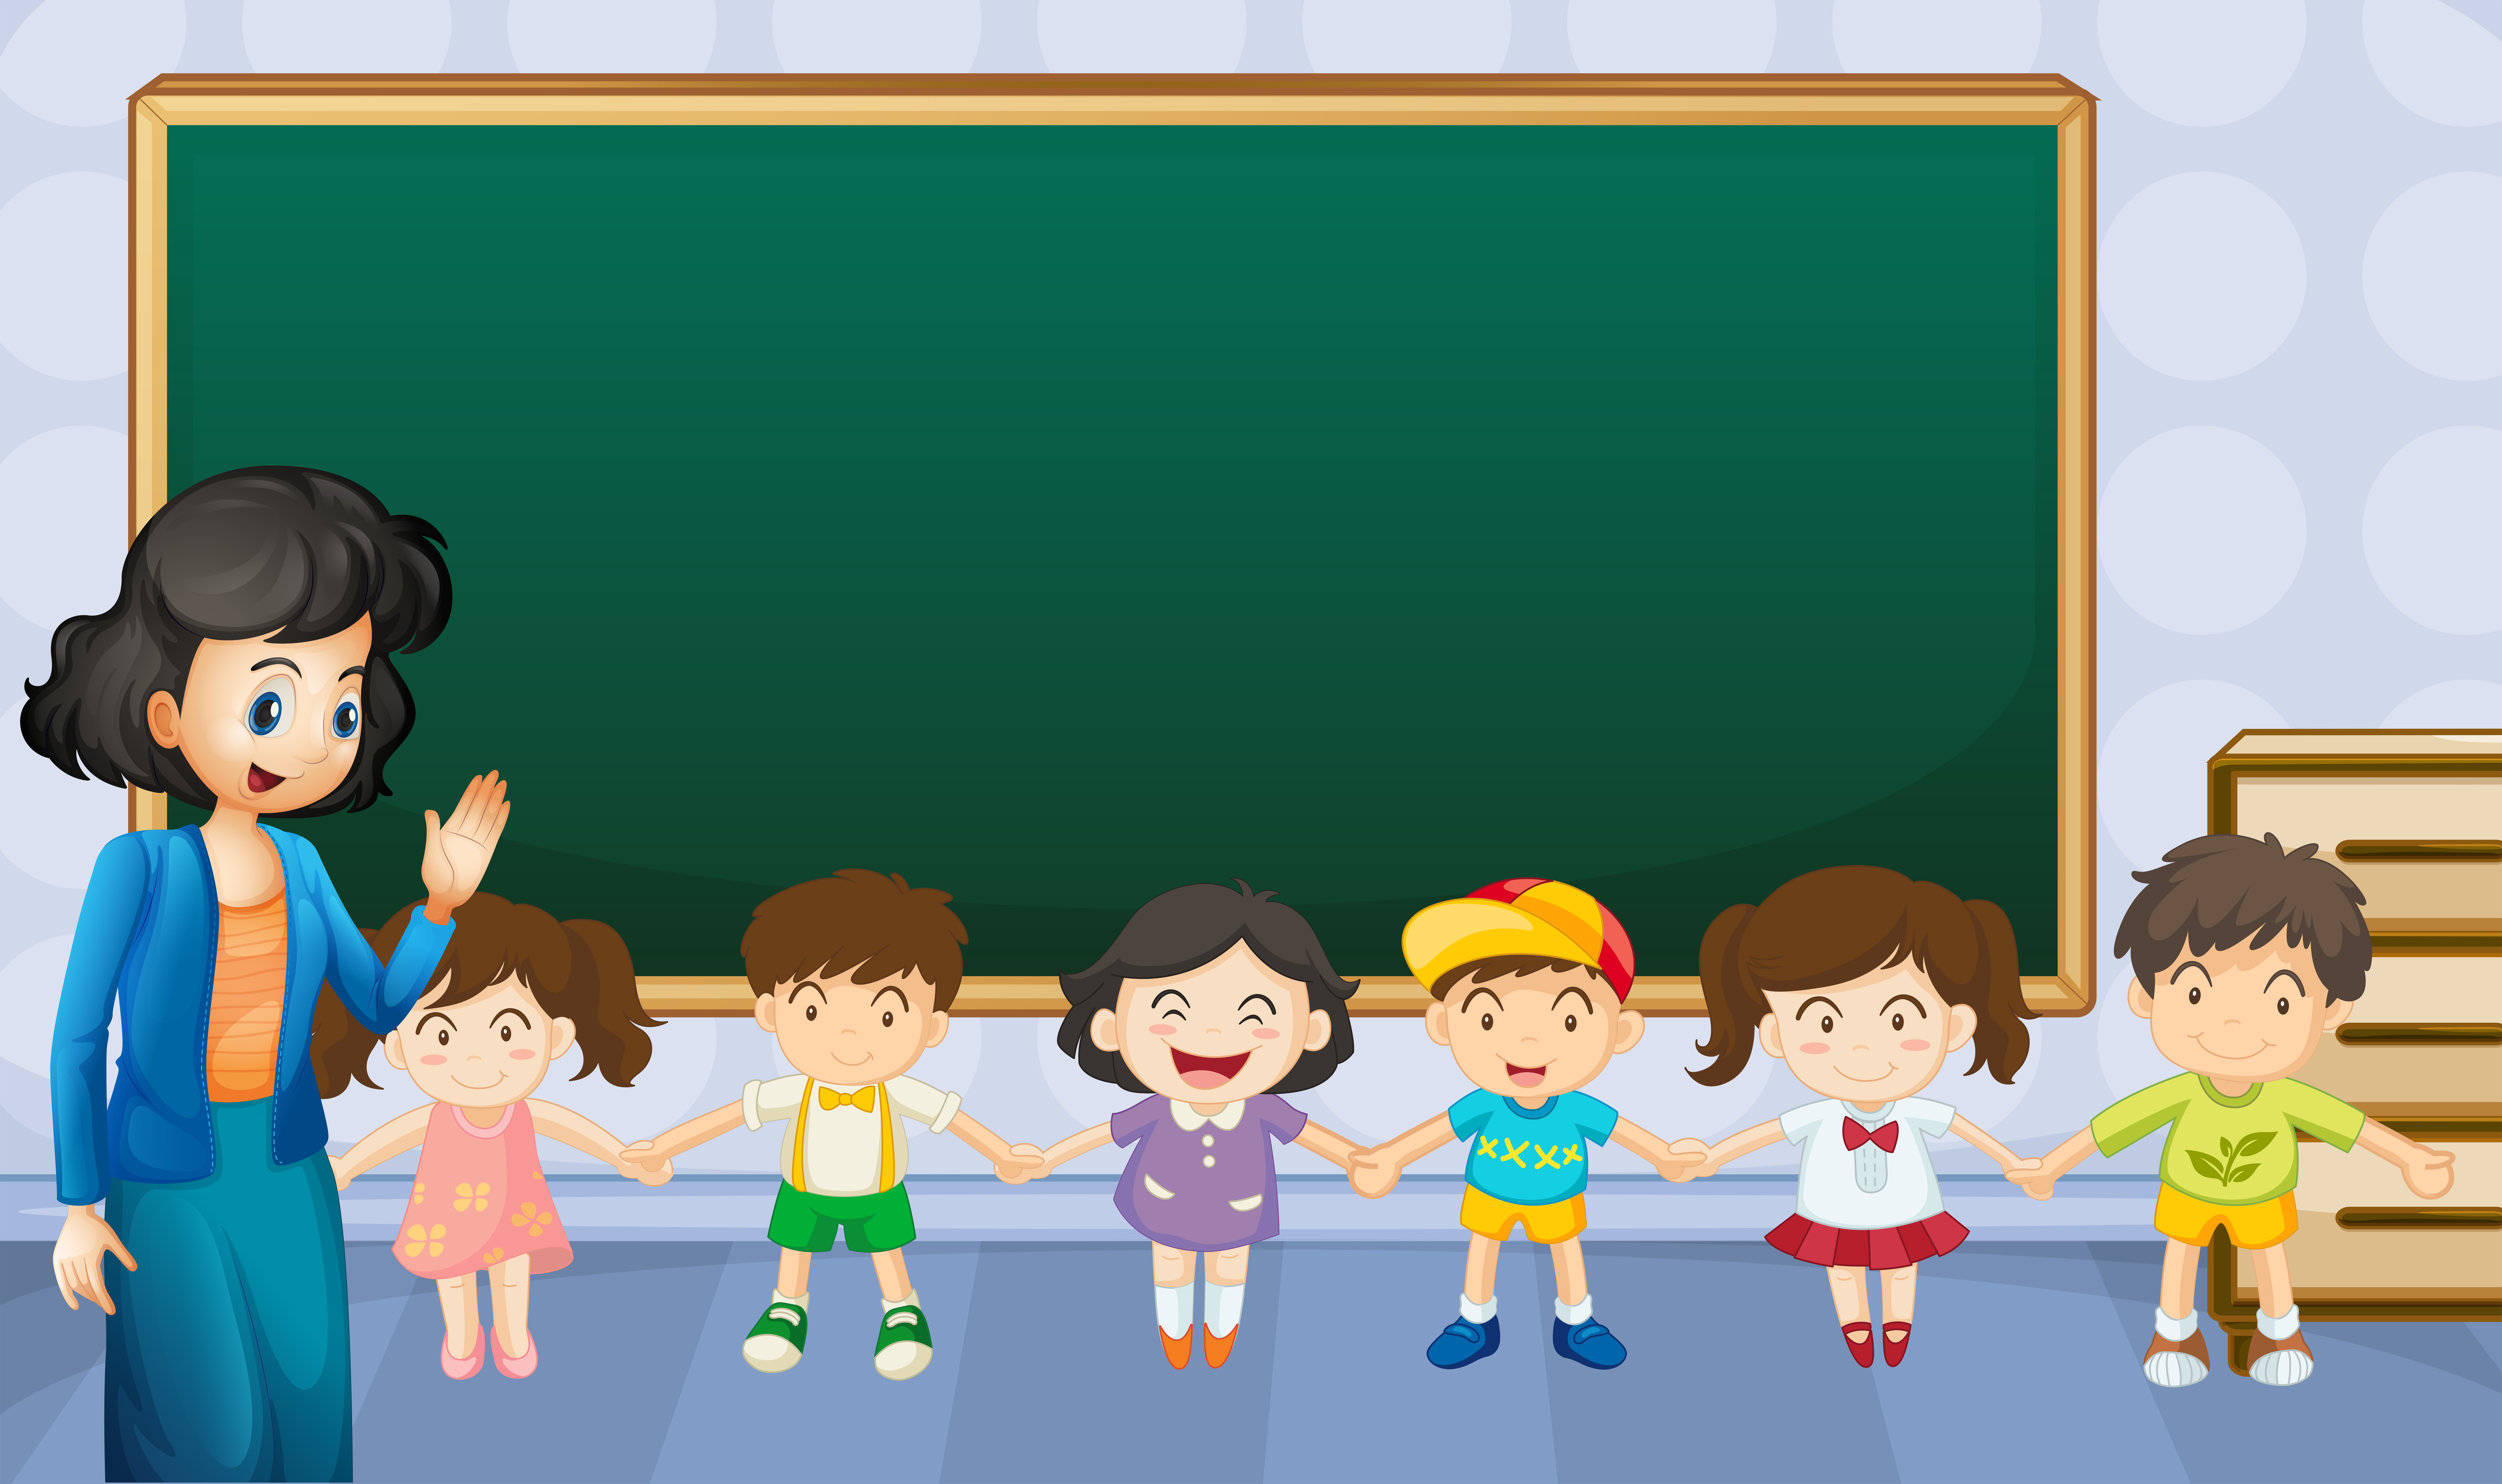 Teacher and students in the classroom - Download Free ... (6091 x 3613 Pixel)